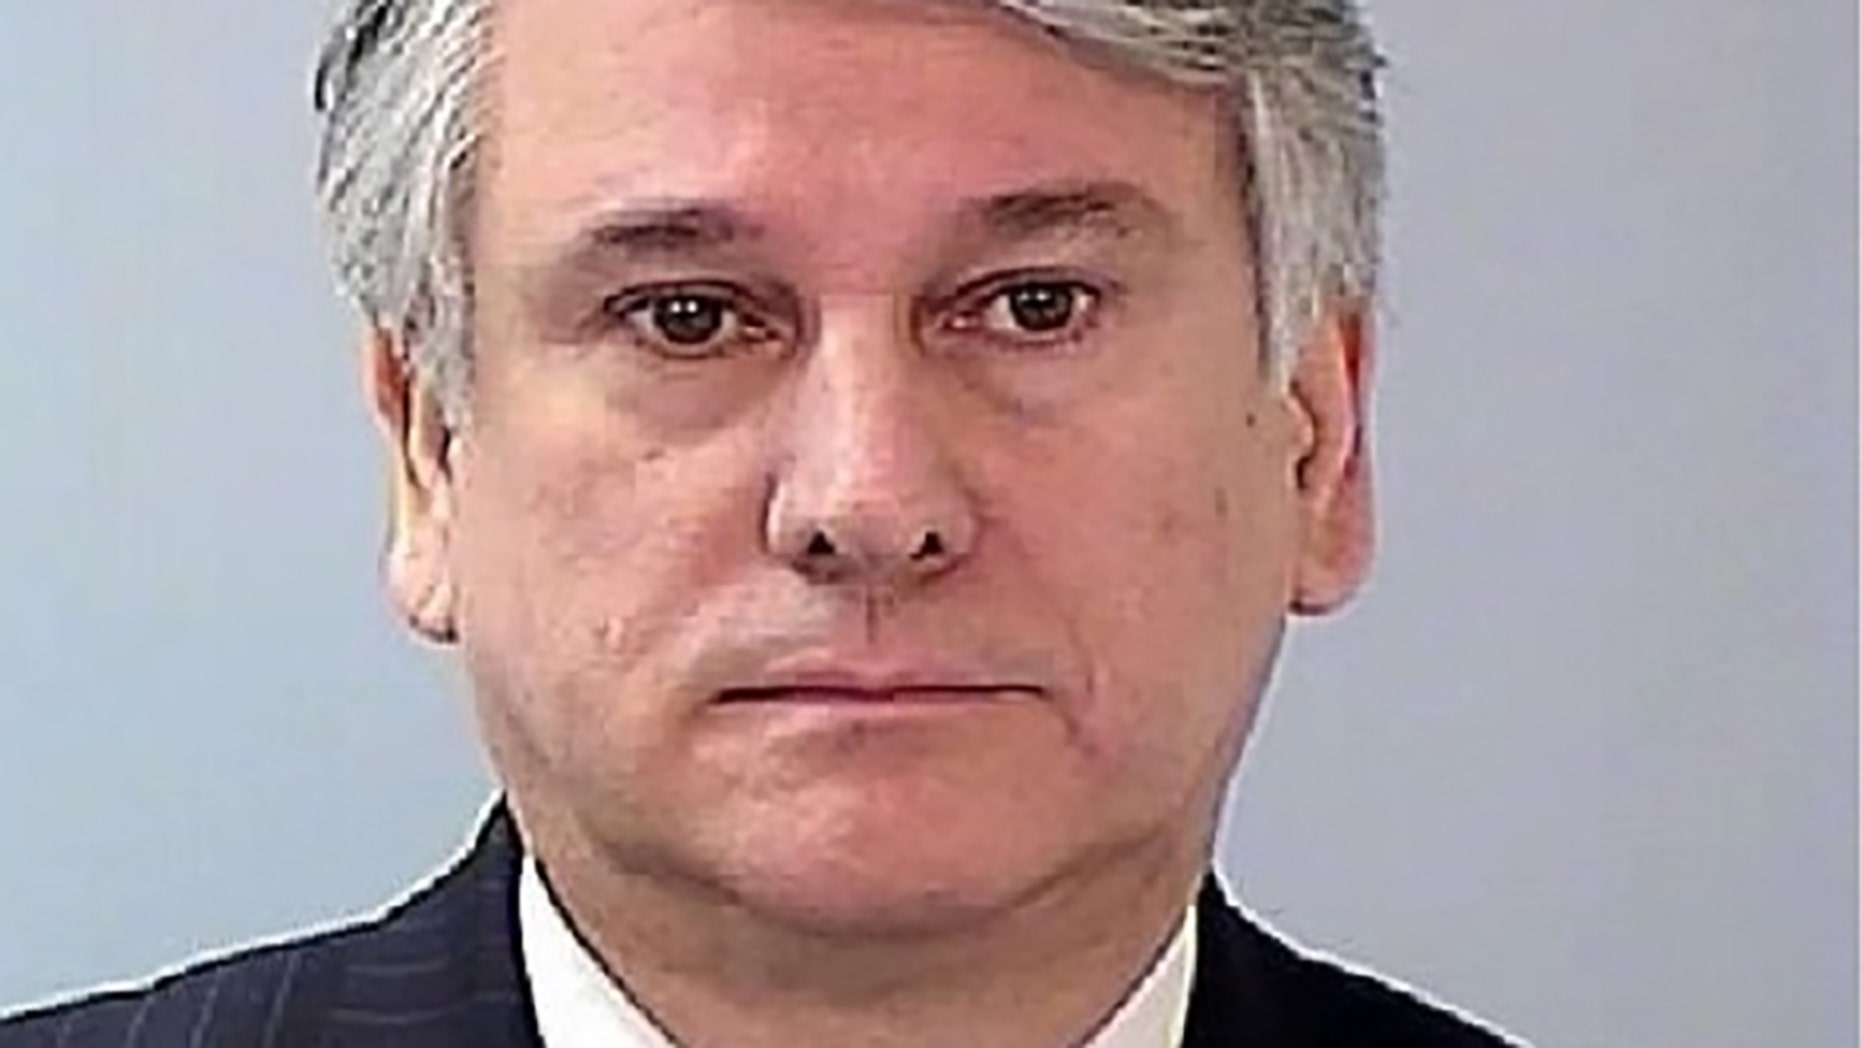 Former neurologist Ricardo Cruciani, 63, has been charged with eight counts of second-degree sexual assault and seven counts of fourth-degree criminal sexual contact for assaulting women over a two-year span while he was a chief neuroscientist at a health facility in New Jersey.